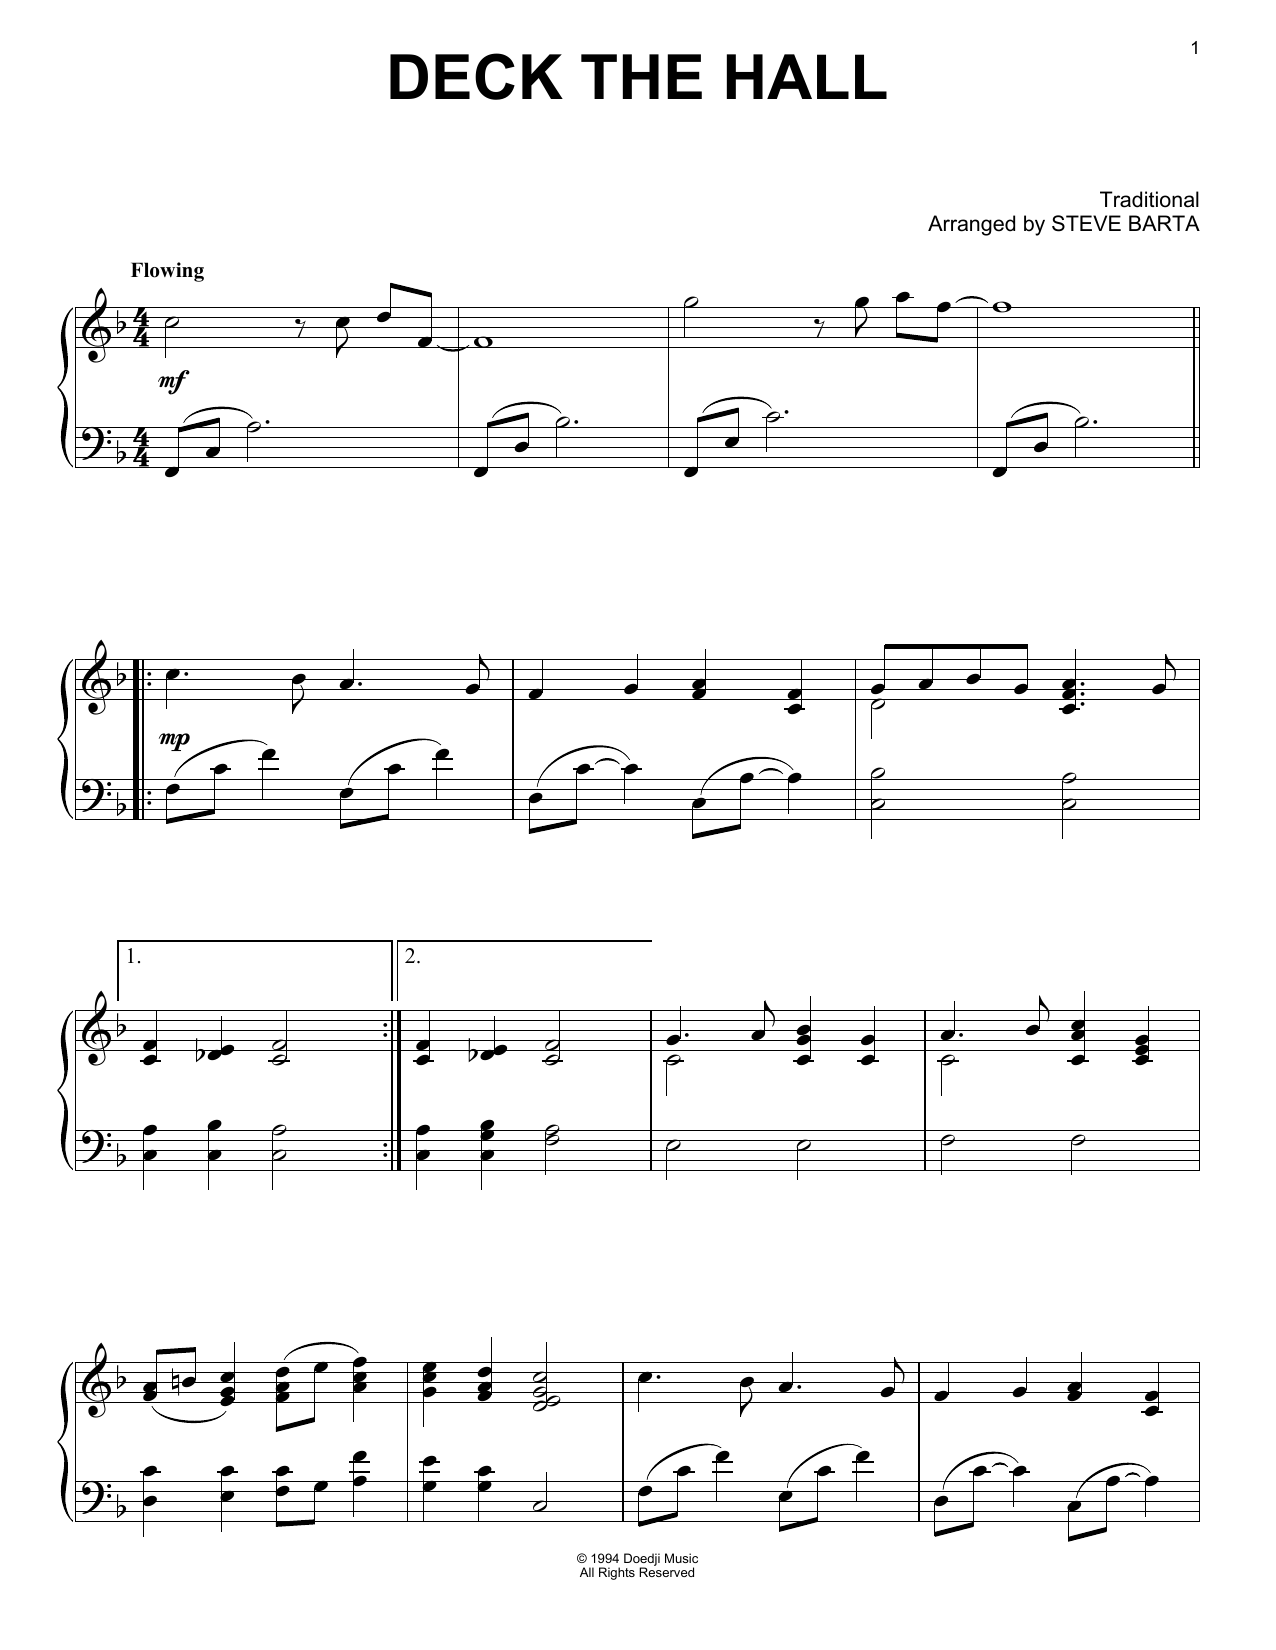 Traditional Carol Deck The Hall sheet music notes and chords